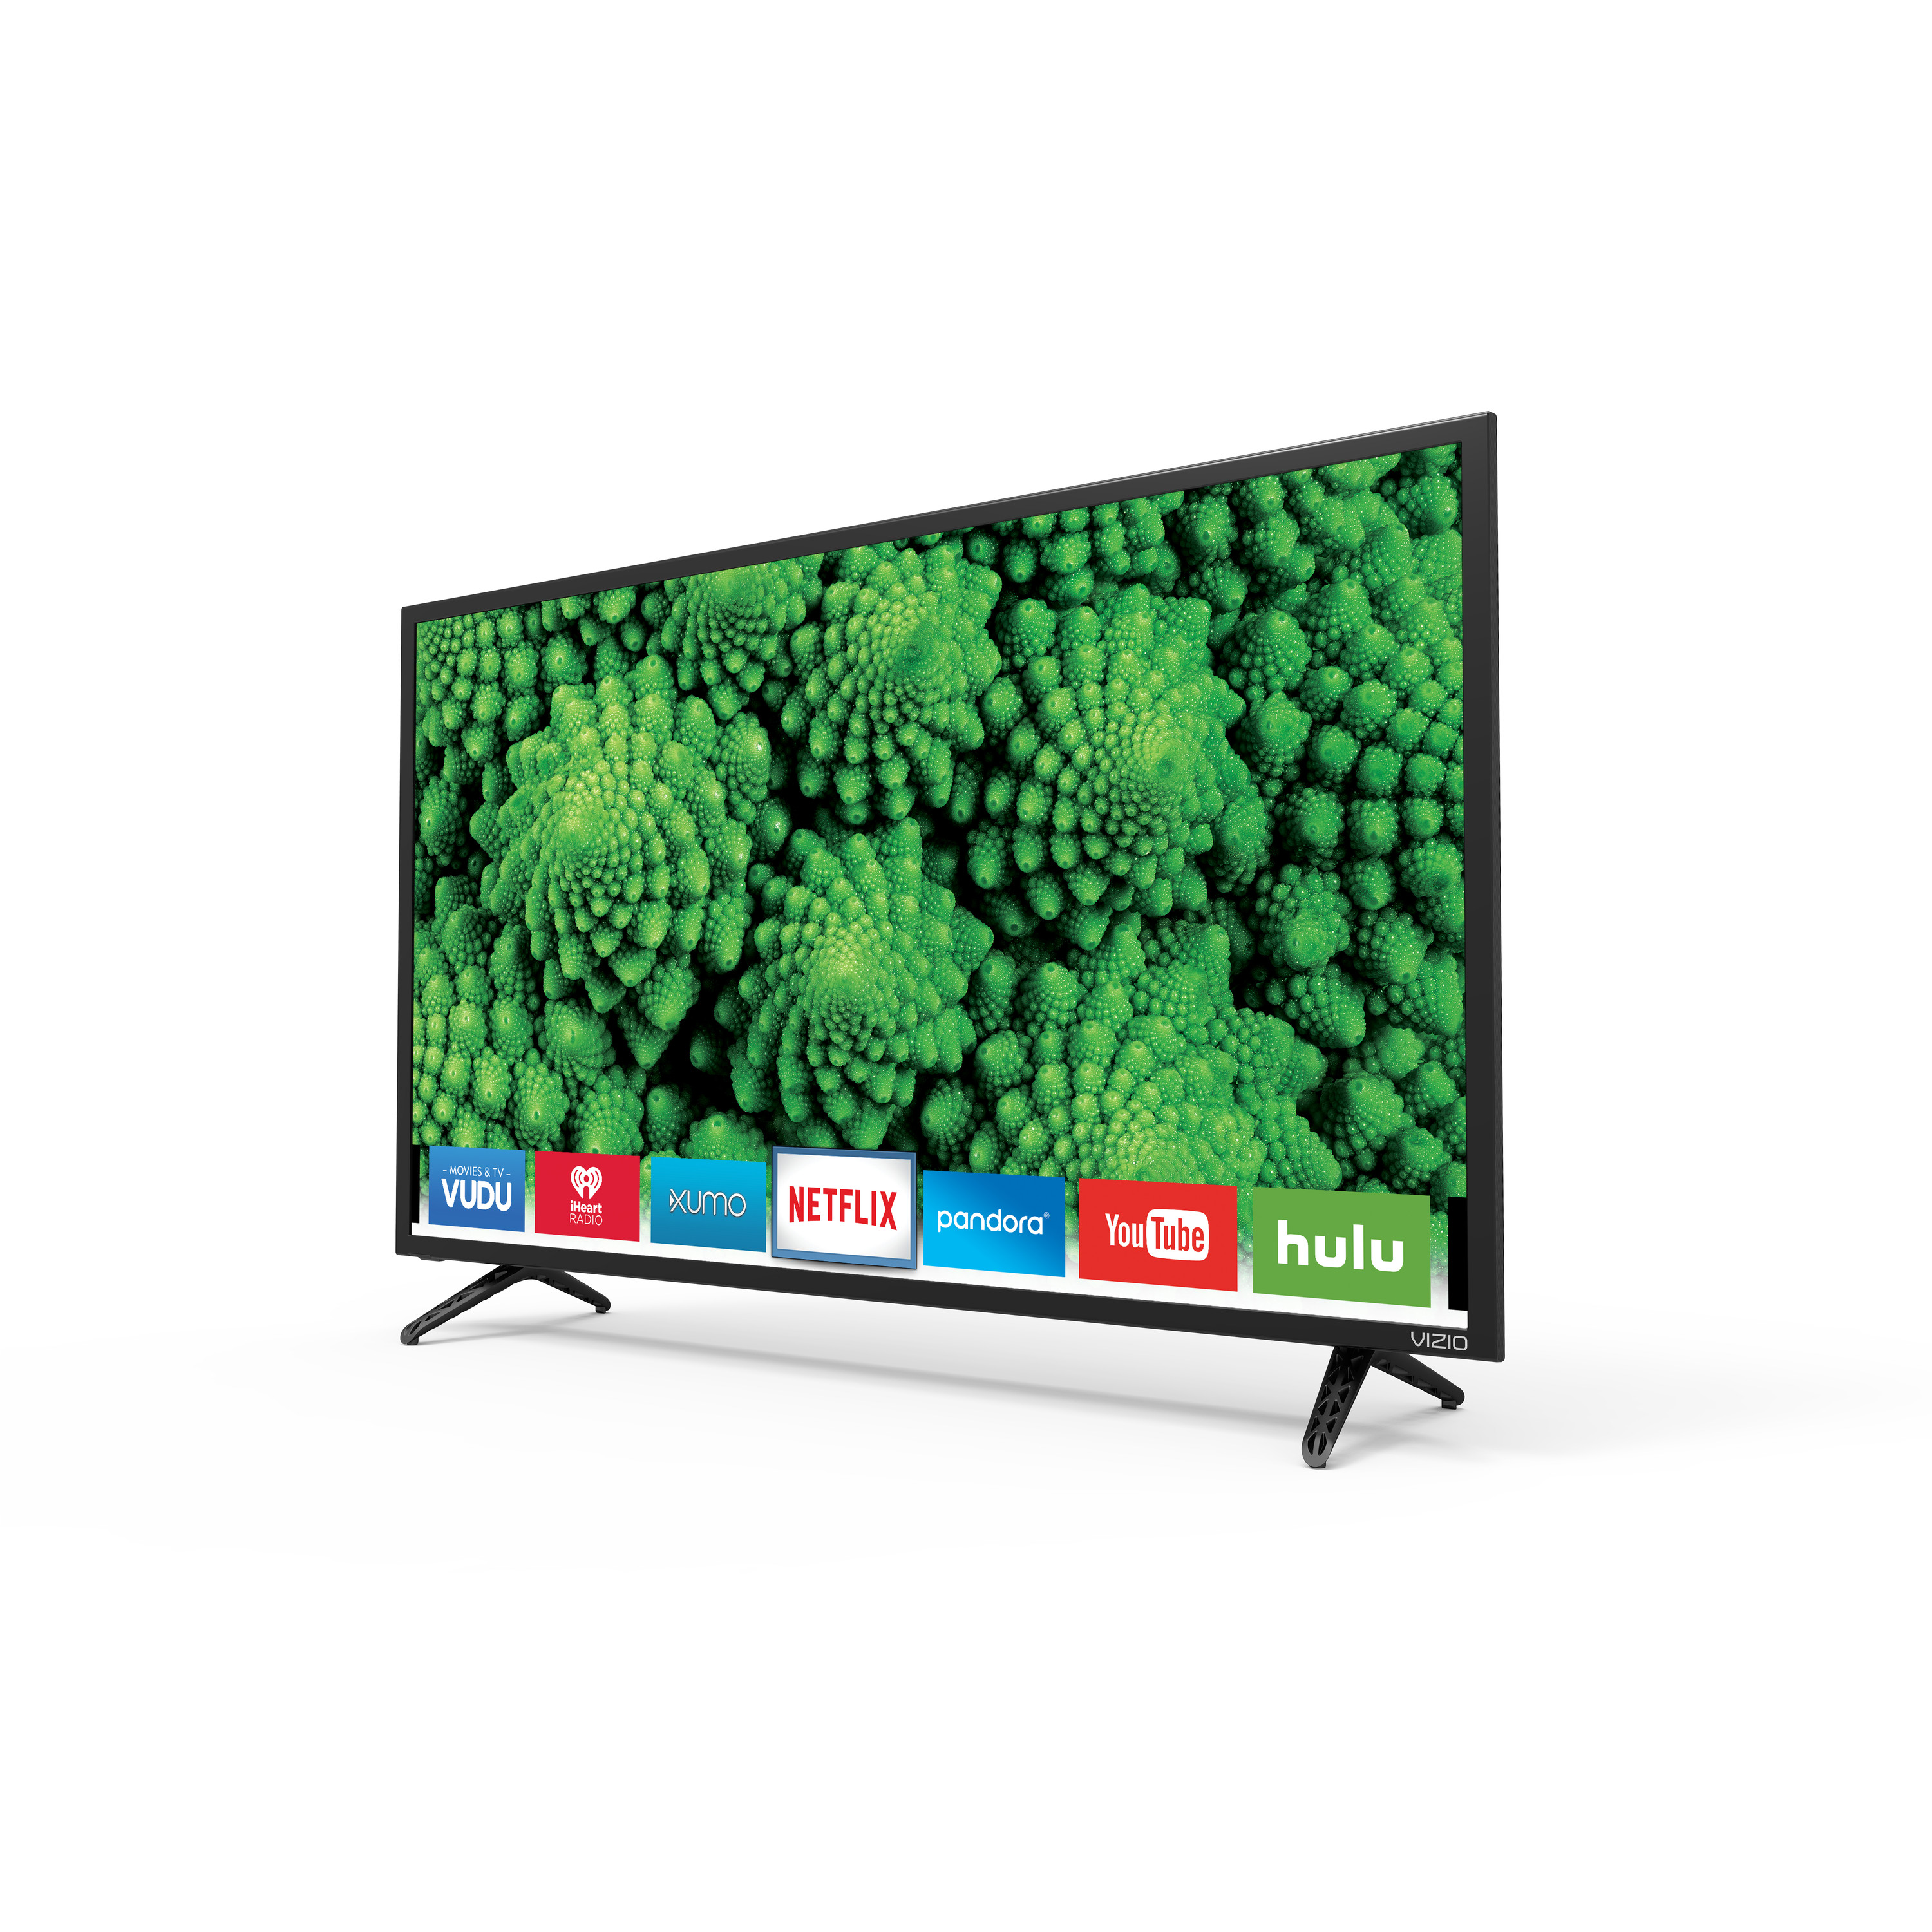 VIZIO 32& Class FHD (1080p) Smart LED TV (D32F-E1)